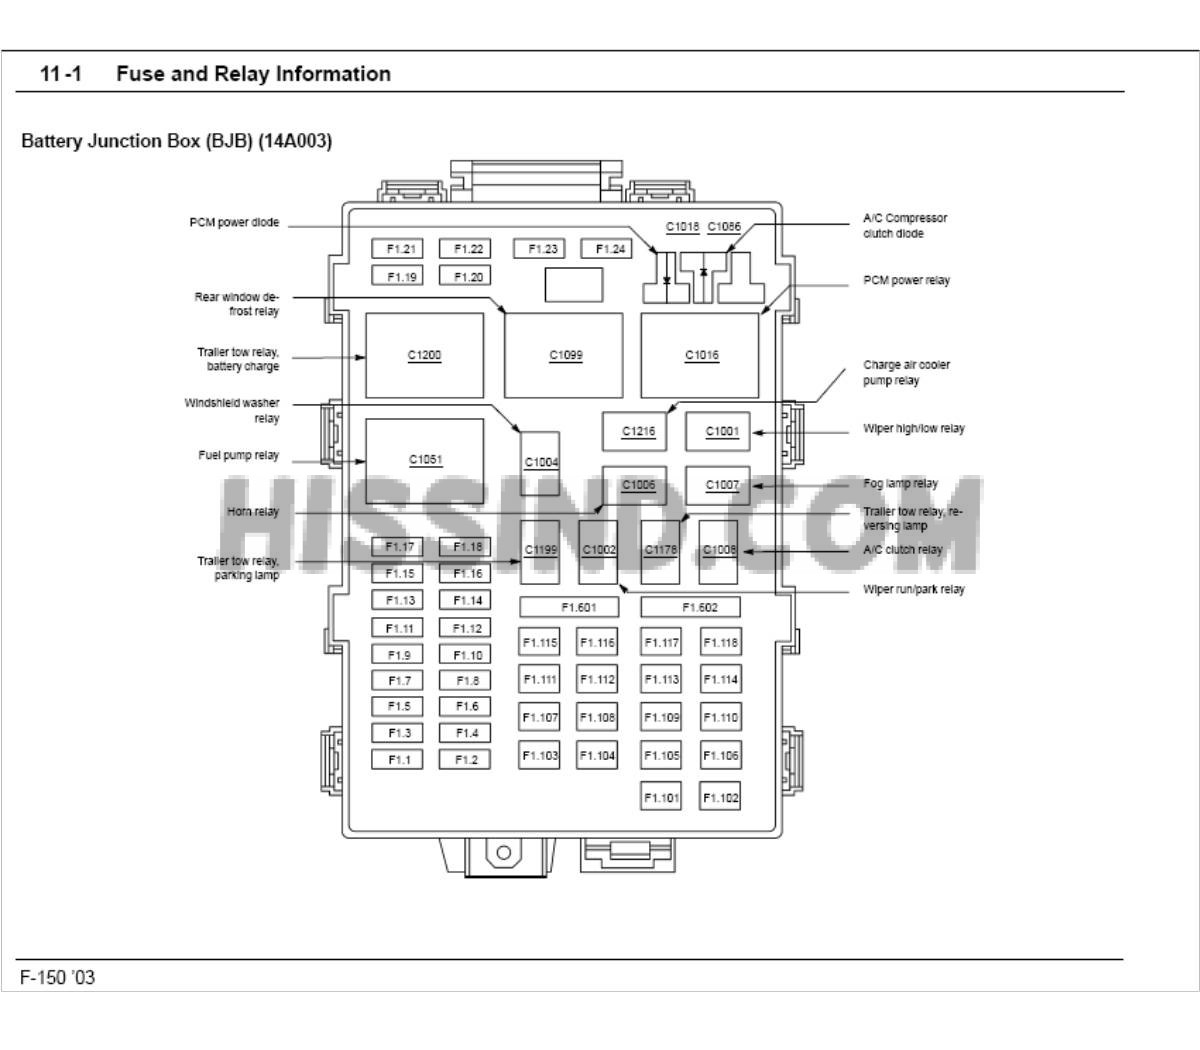 2004 ford excursion fuse box 250 wiring diagram on 2008 ford f 250 super duty wiring diagram ford super duty dually [ 1200 x 1050 Pixel ]